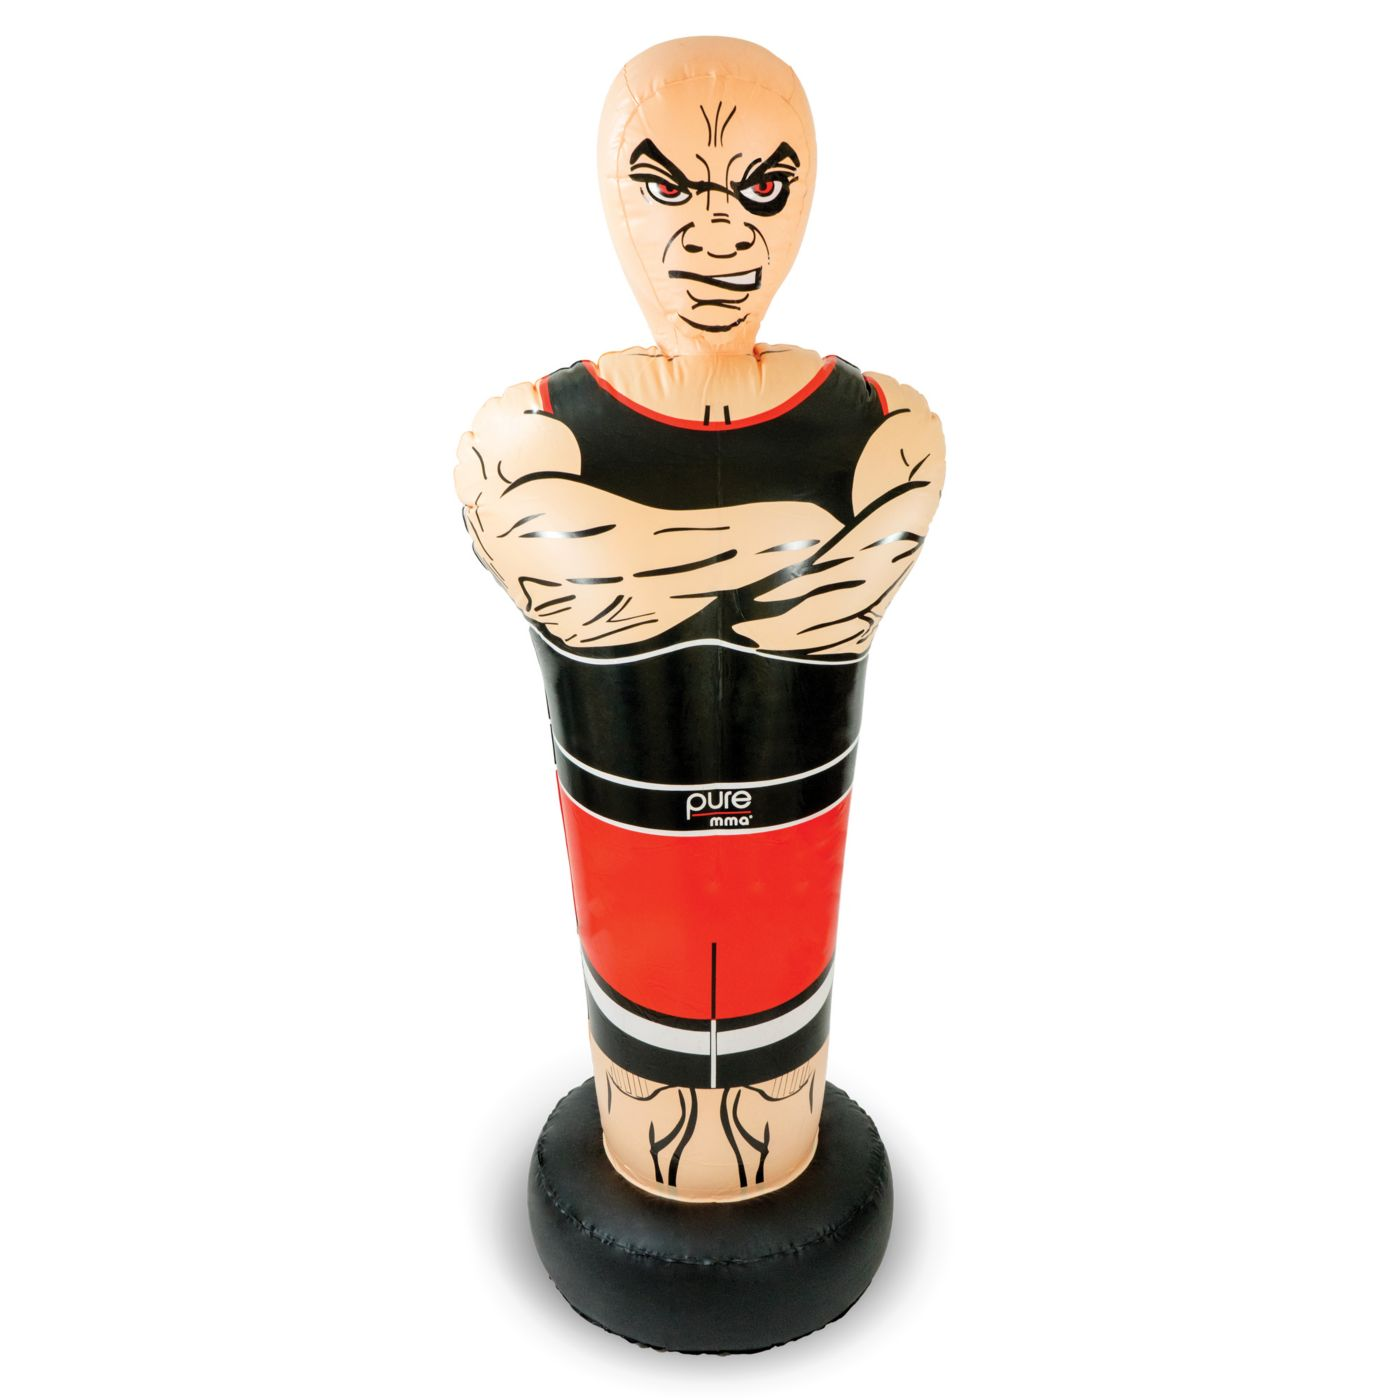 Pure Boxing Tough Guy Inflate Punching Bag